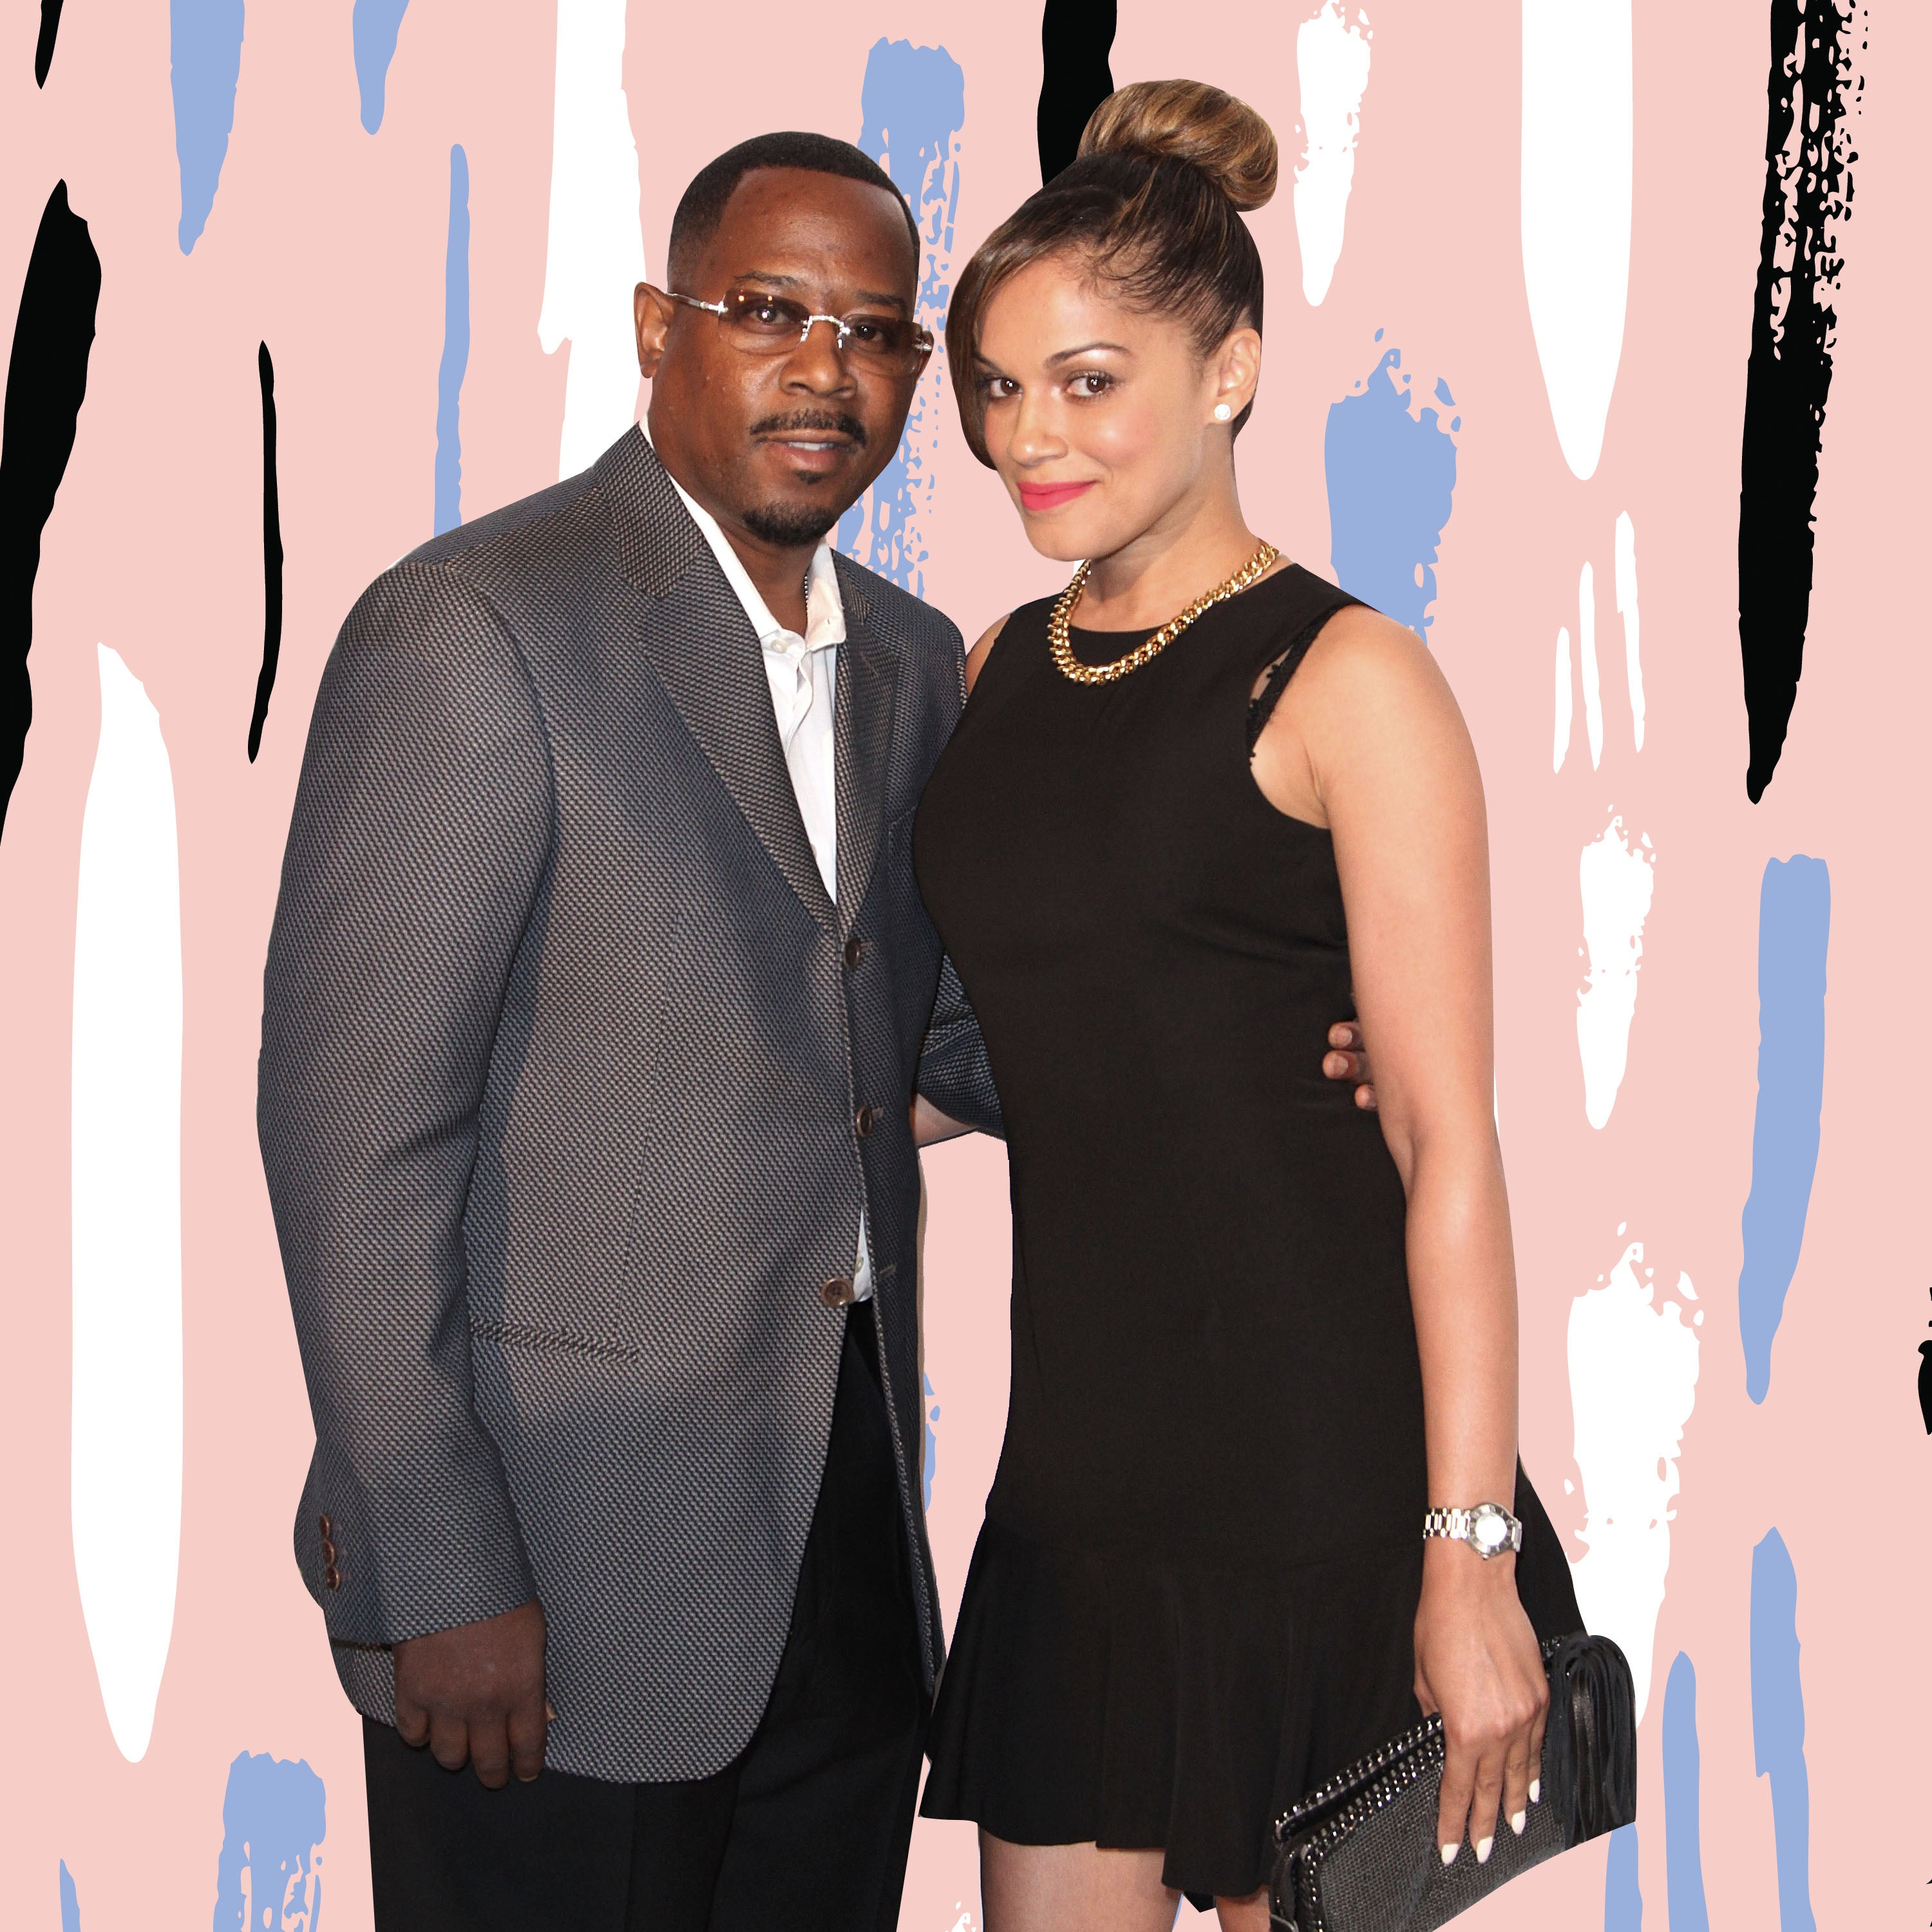 Martin Lawrence Showers His Fiancée Roberta With Compliments For Her Birthday (and Shouts Out Her Pancake Skills!)